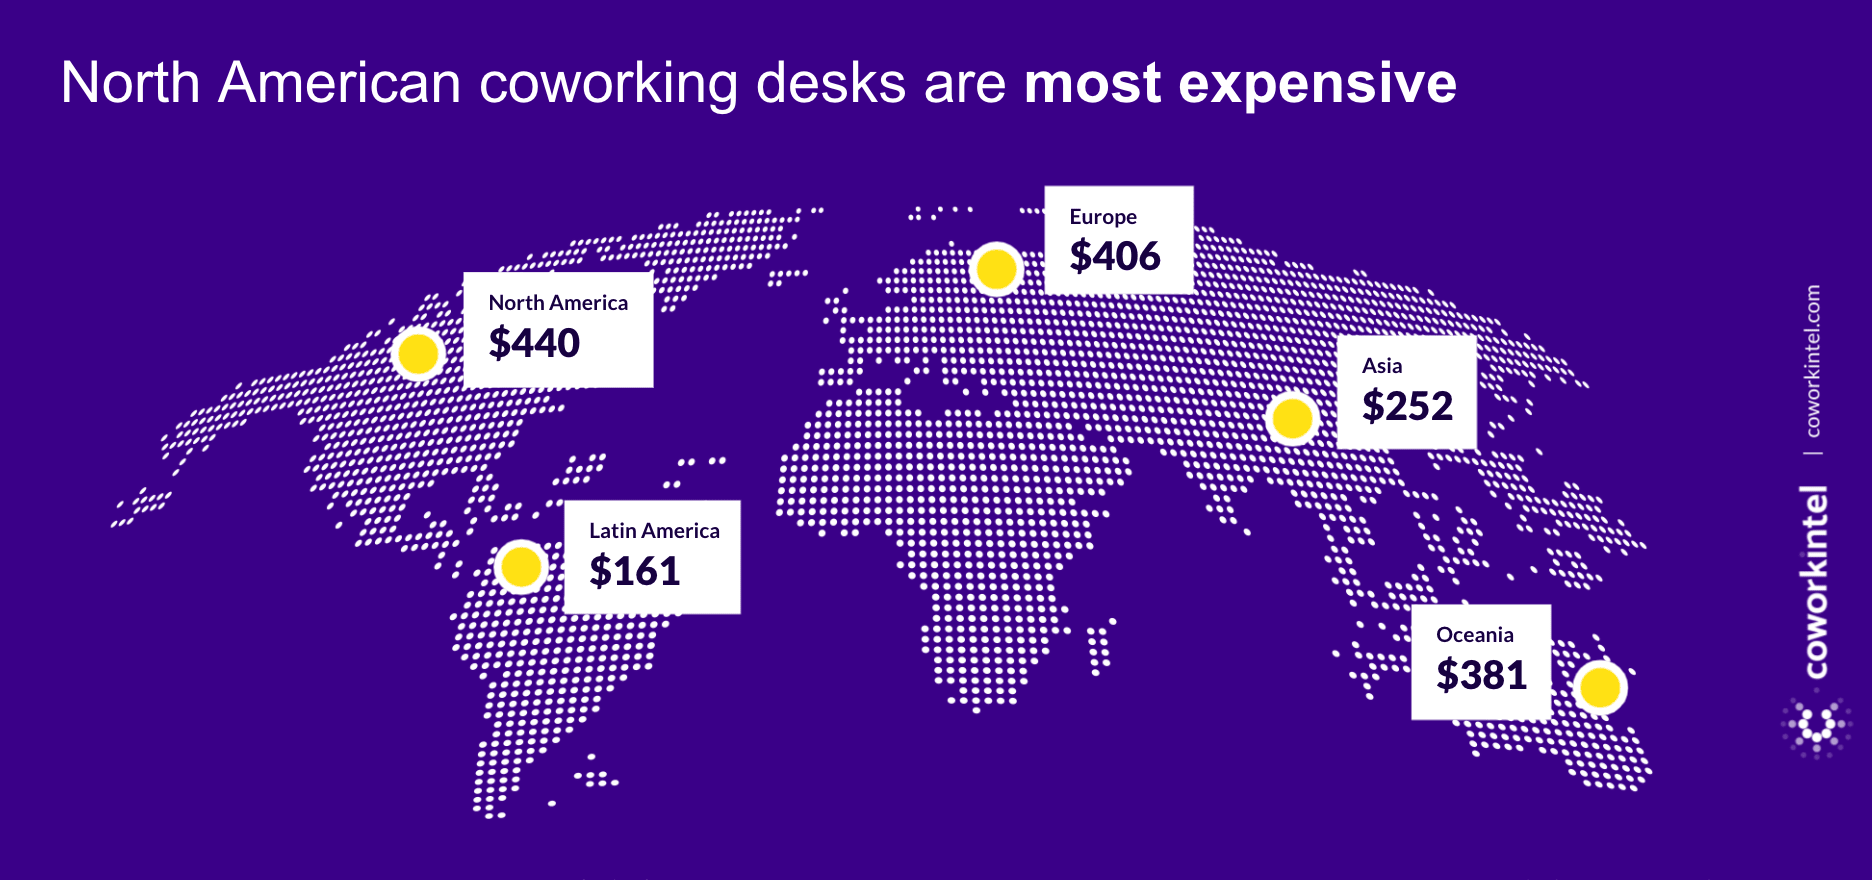 Coworking Pricing: Average coworking desk rate